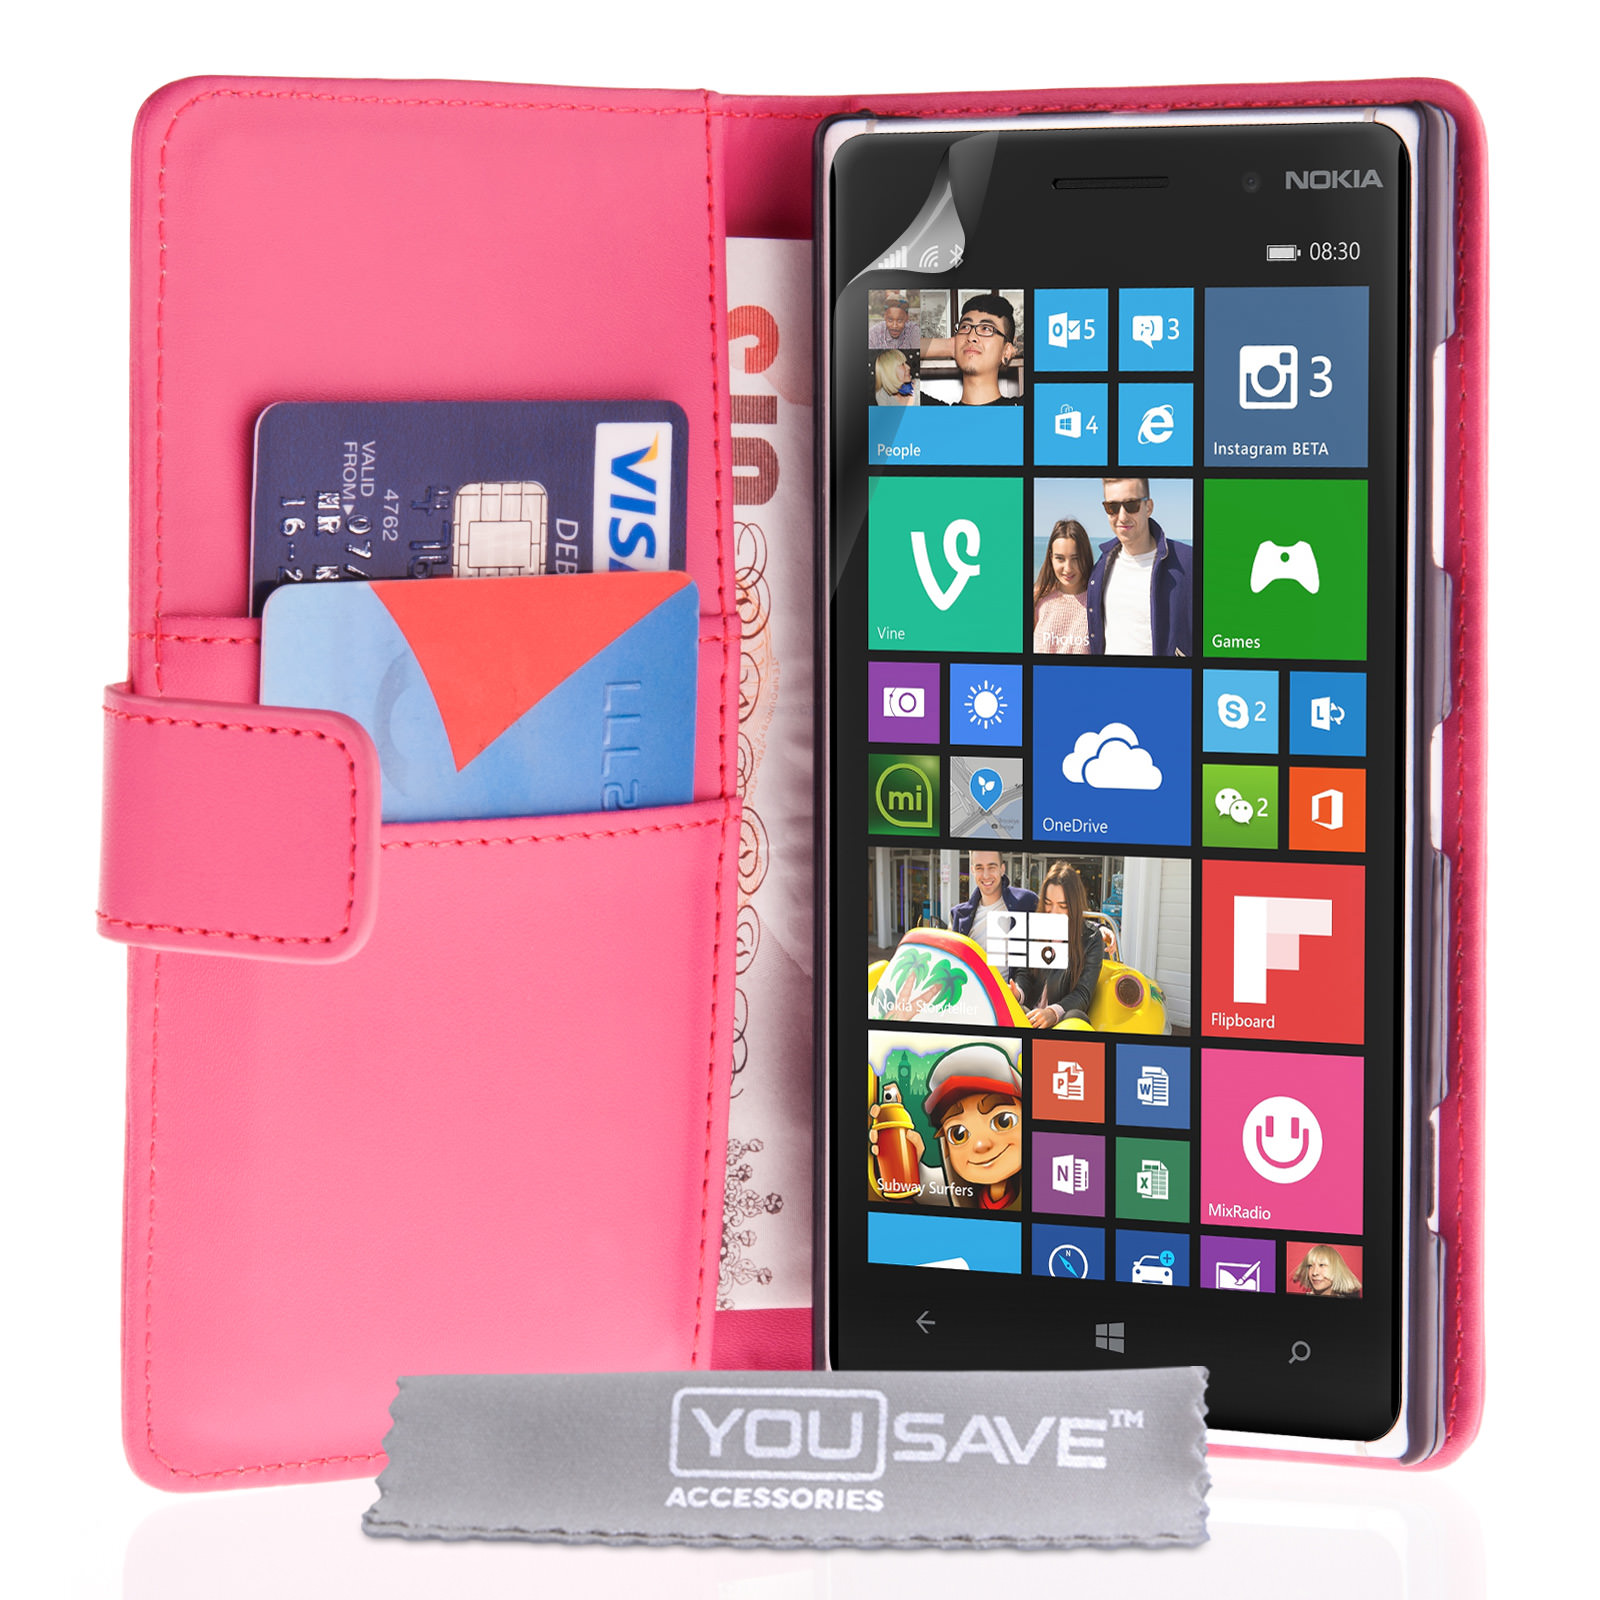 yousave accessories nokia lumia 830 leather effect wallet. Black Bedroom Furniture Sets. Home Design Ideas